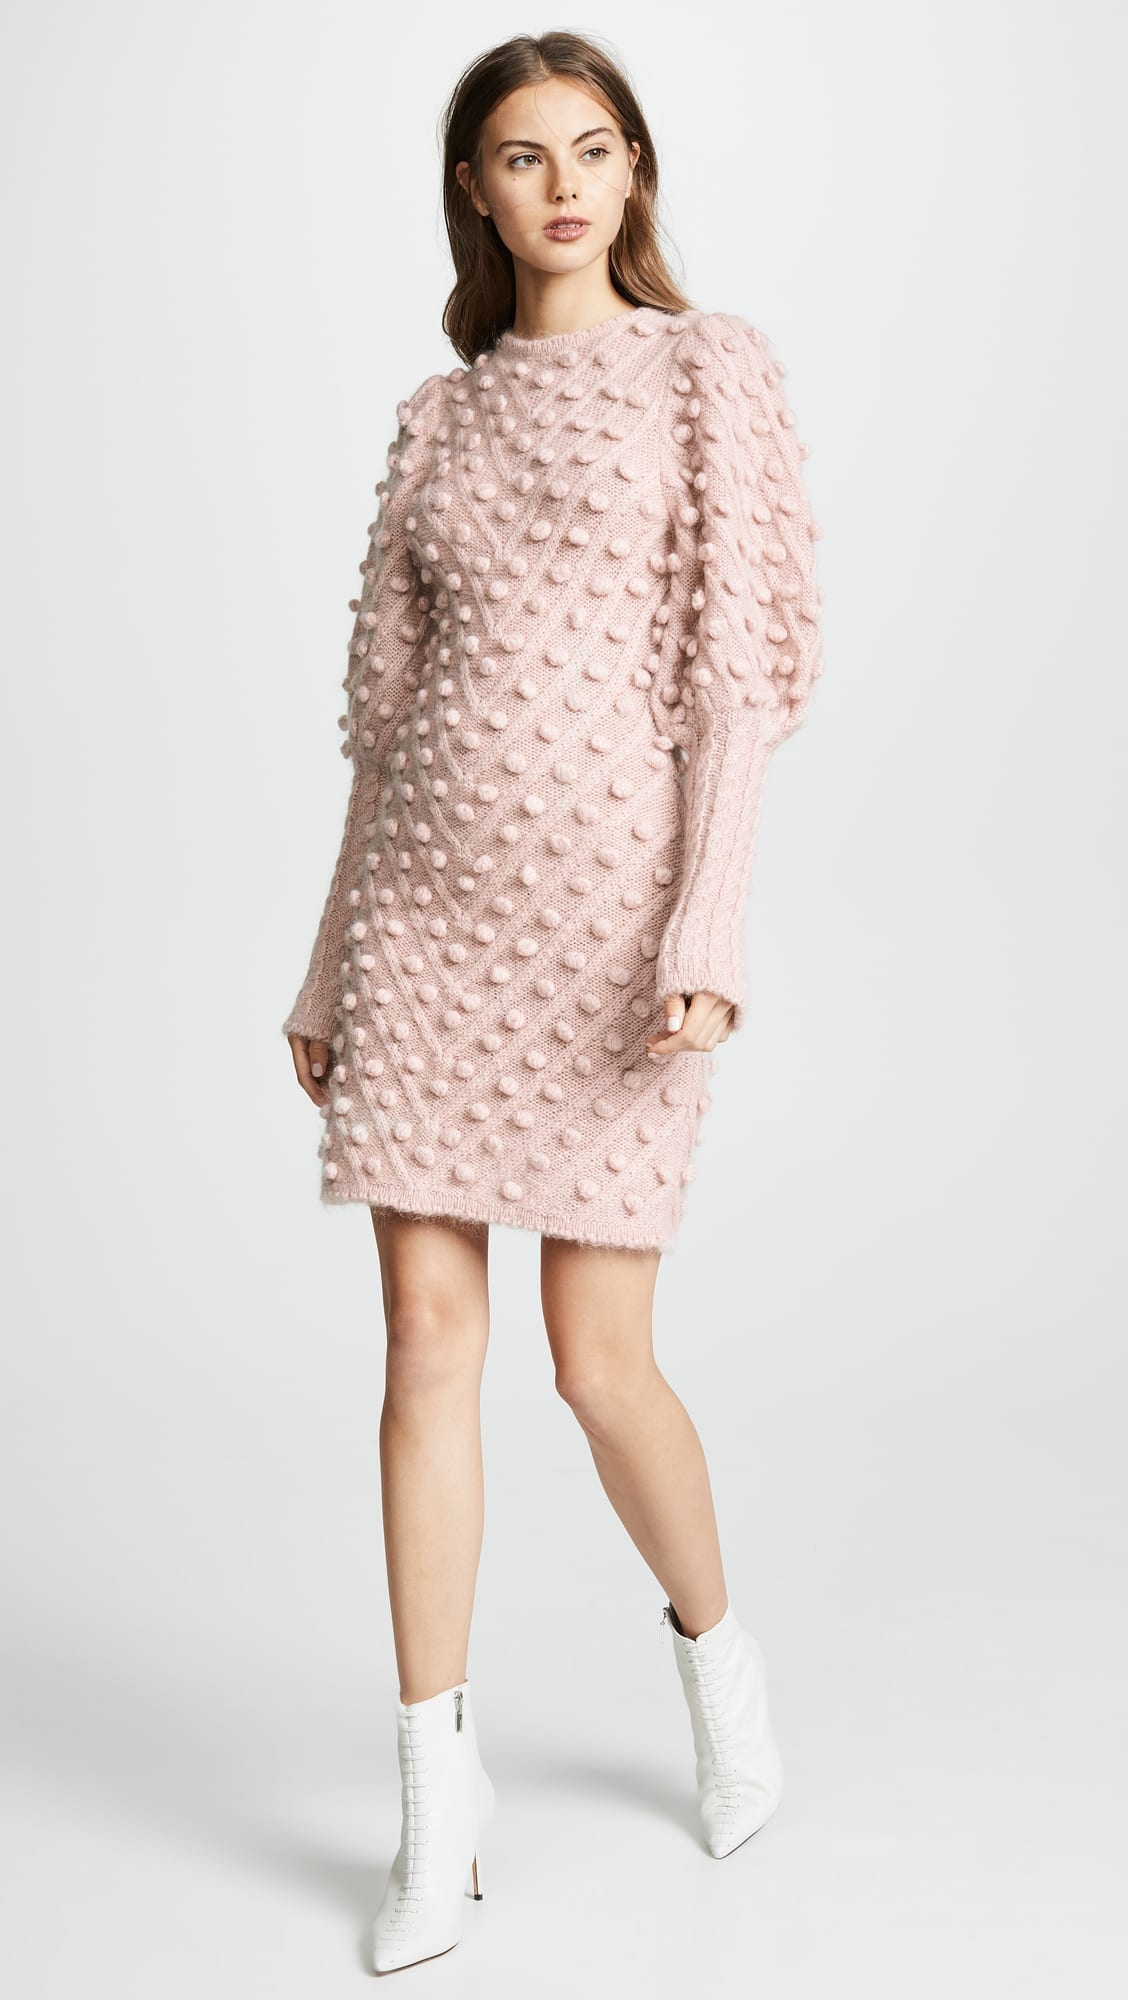 ZIMMERMANN Fleeting Bauble Rose Dress